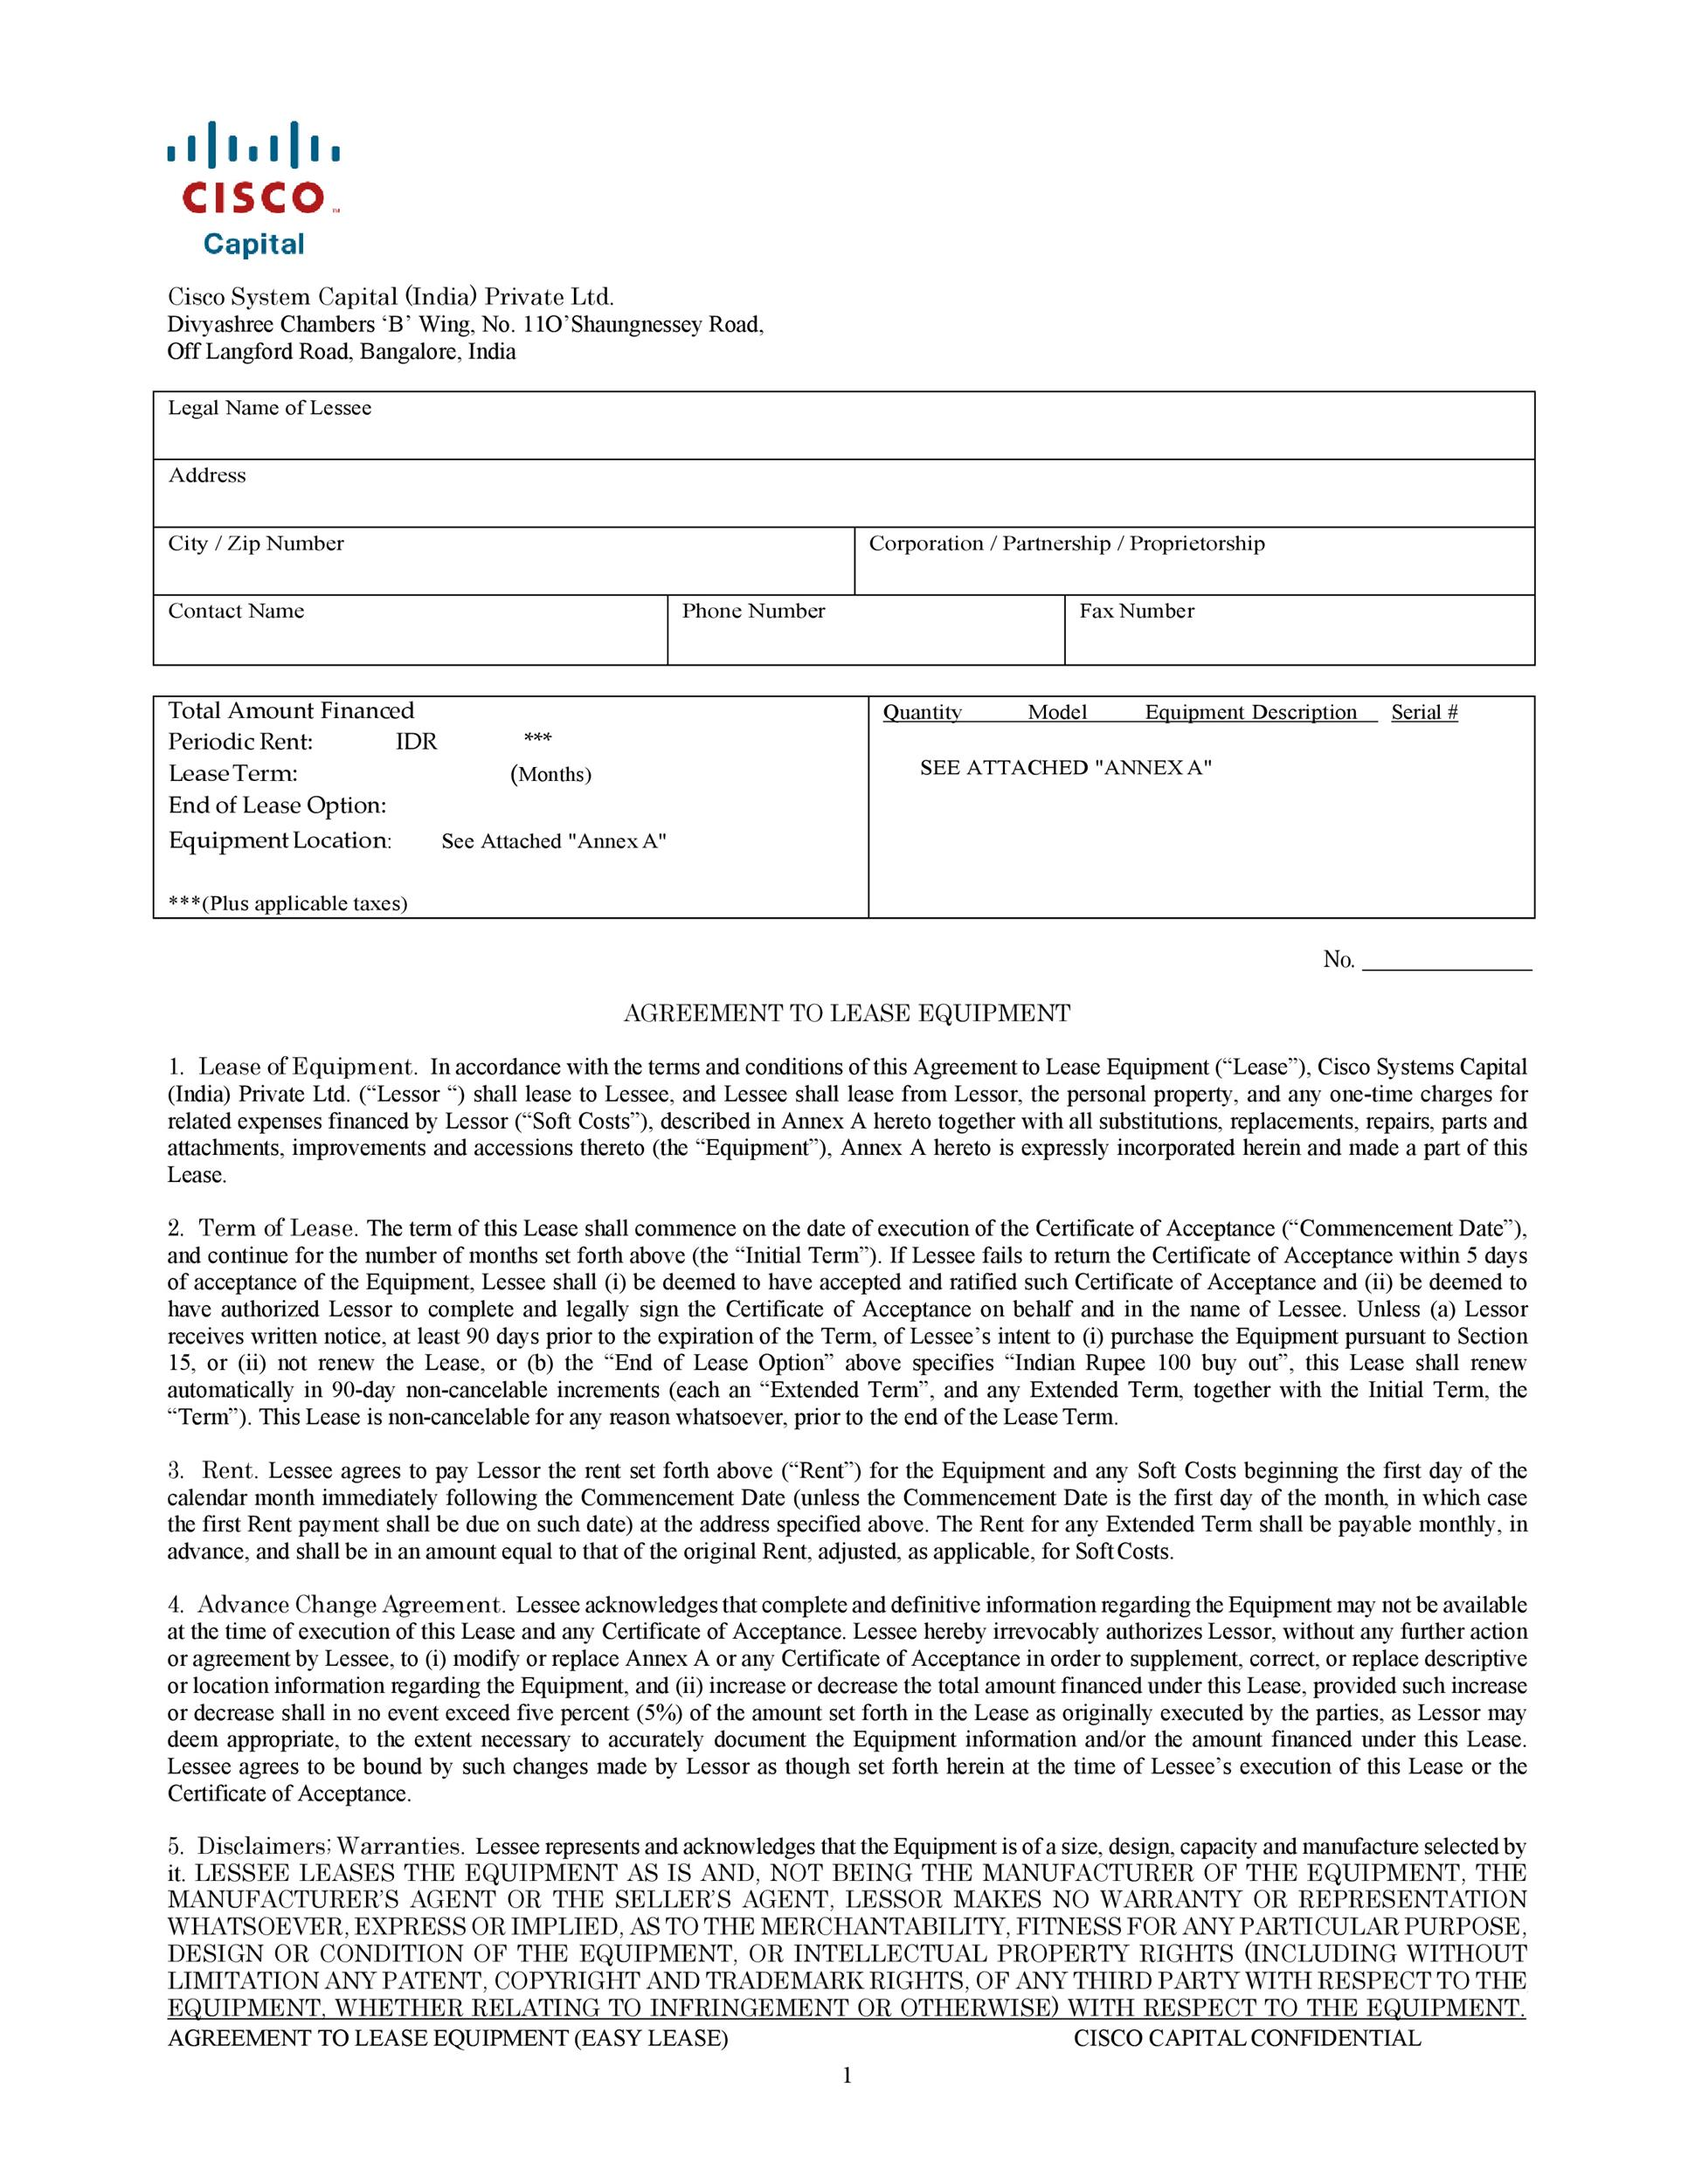 Free equipment lease agreement 16